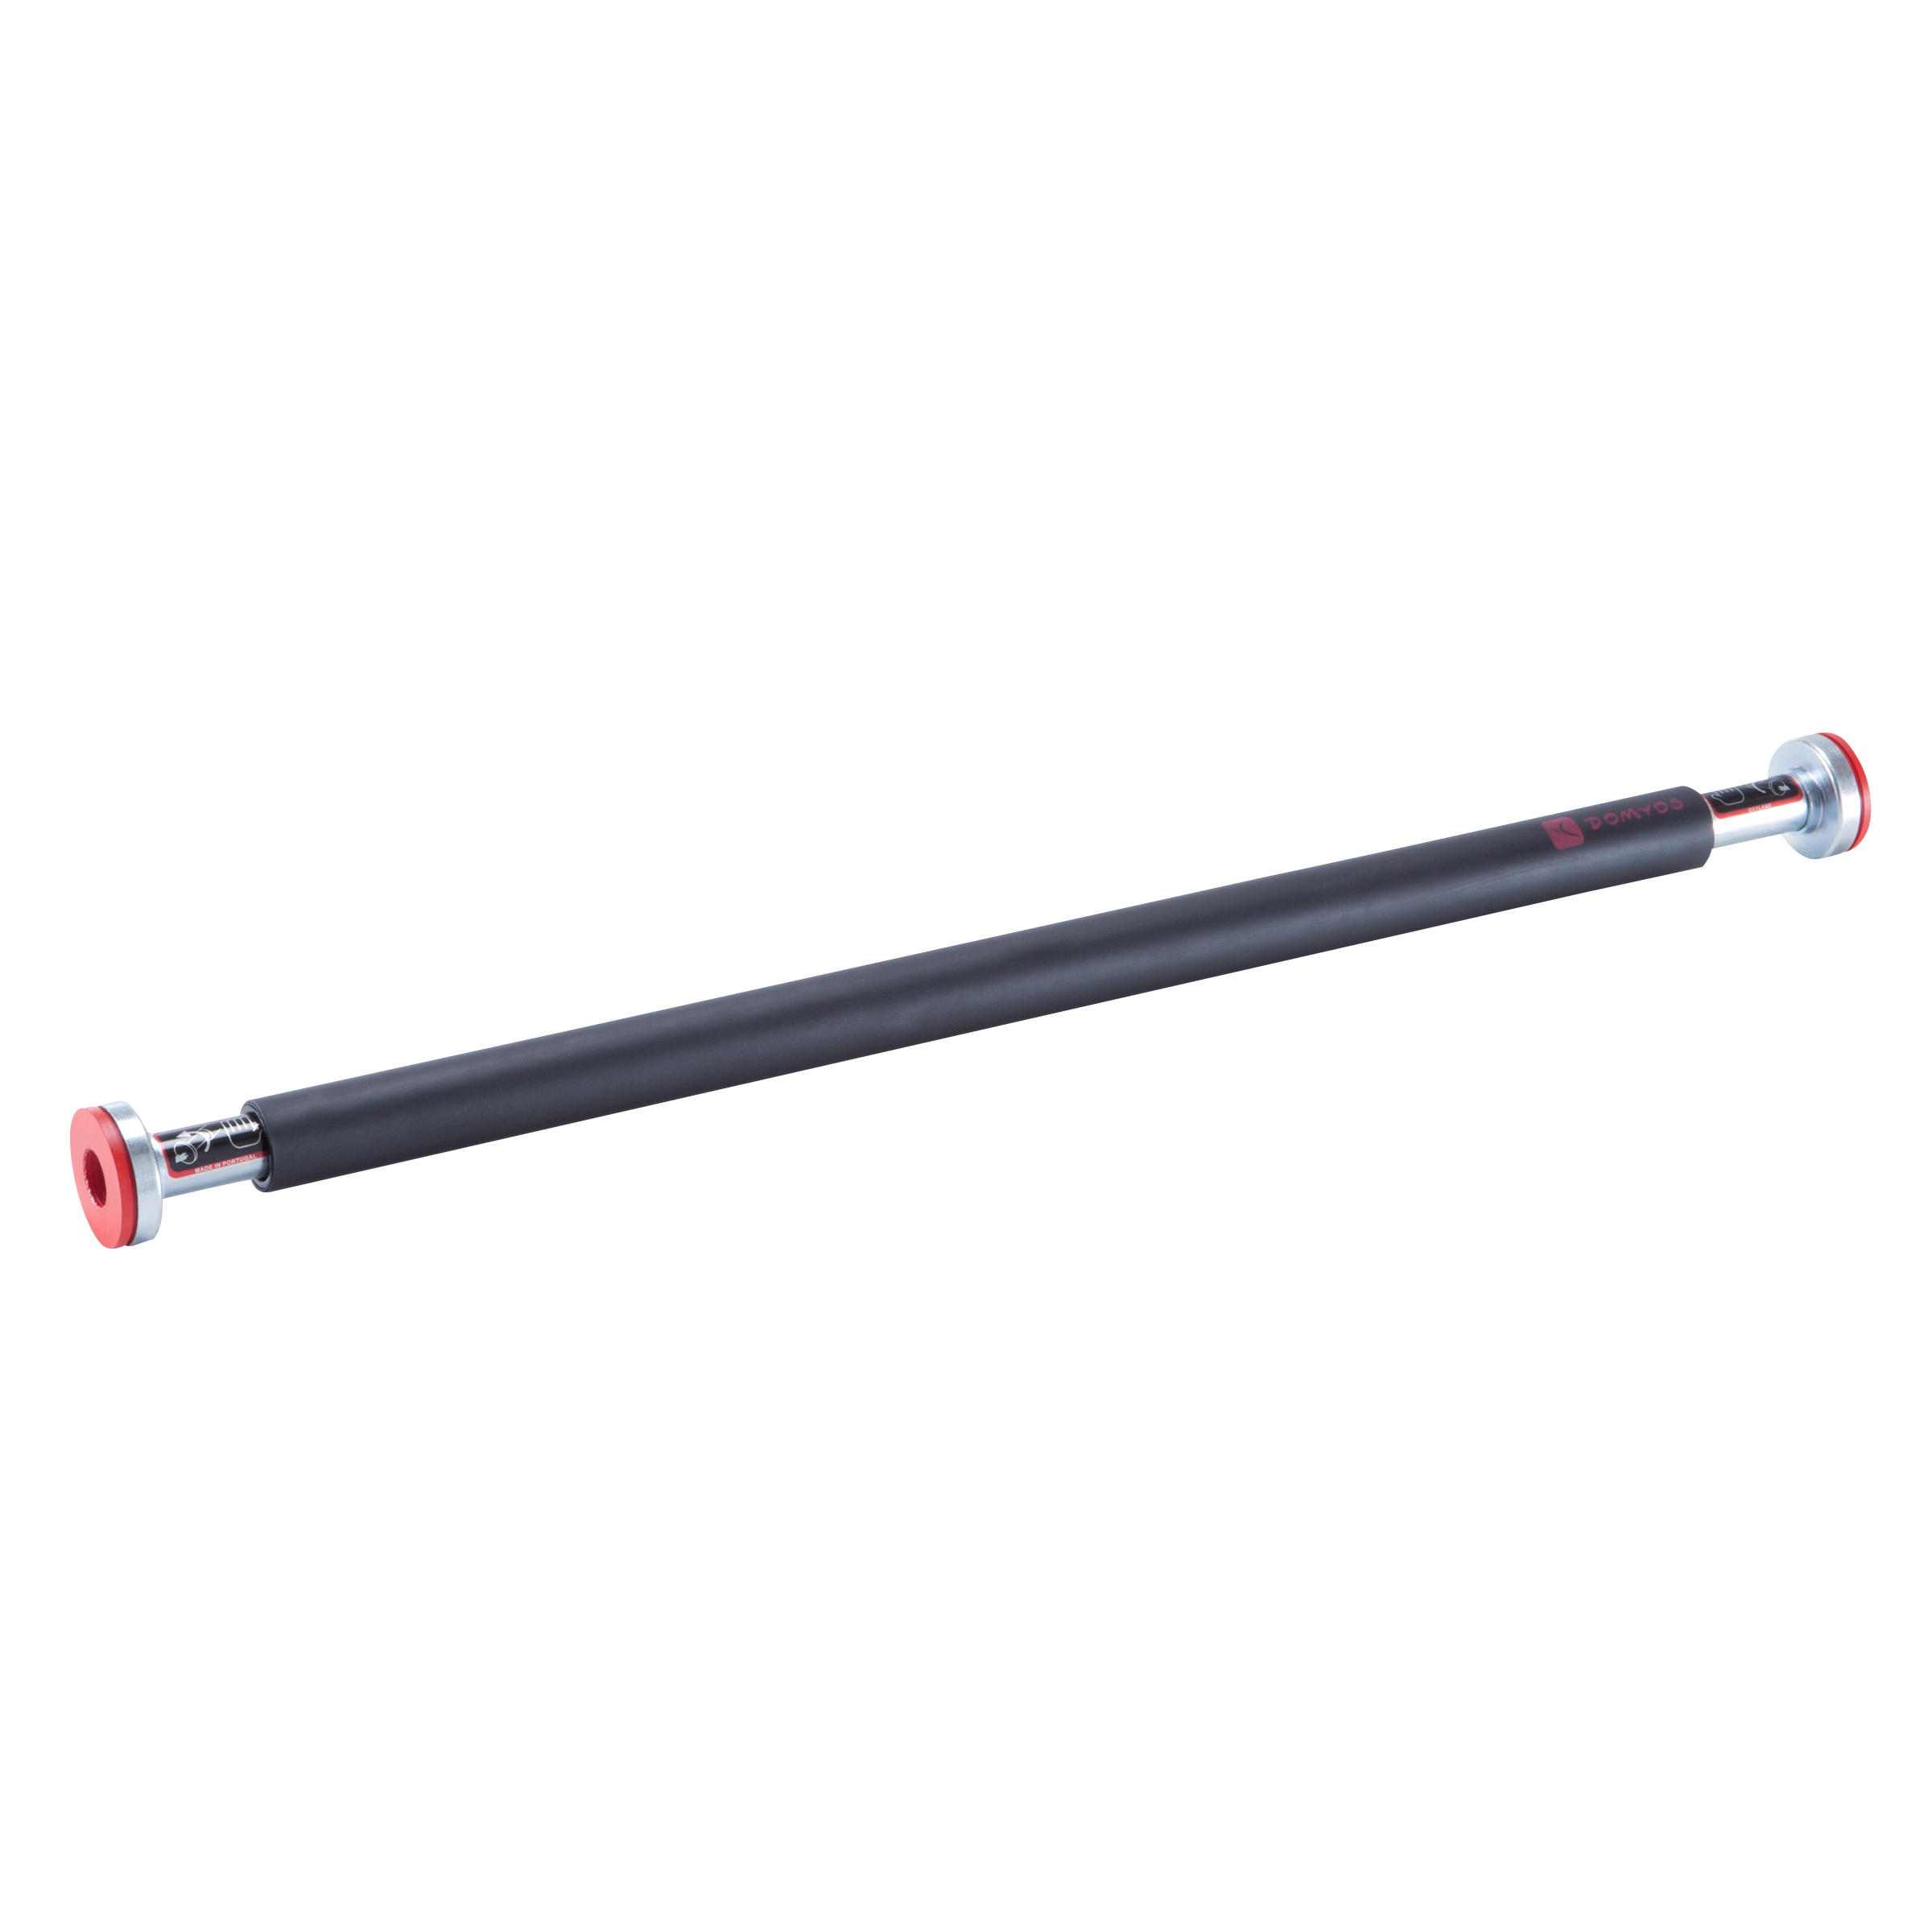 Pull-Up Bar - 70 cm